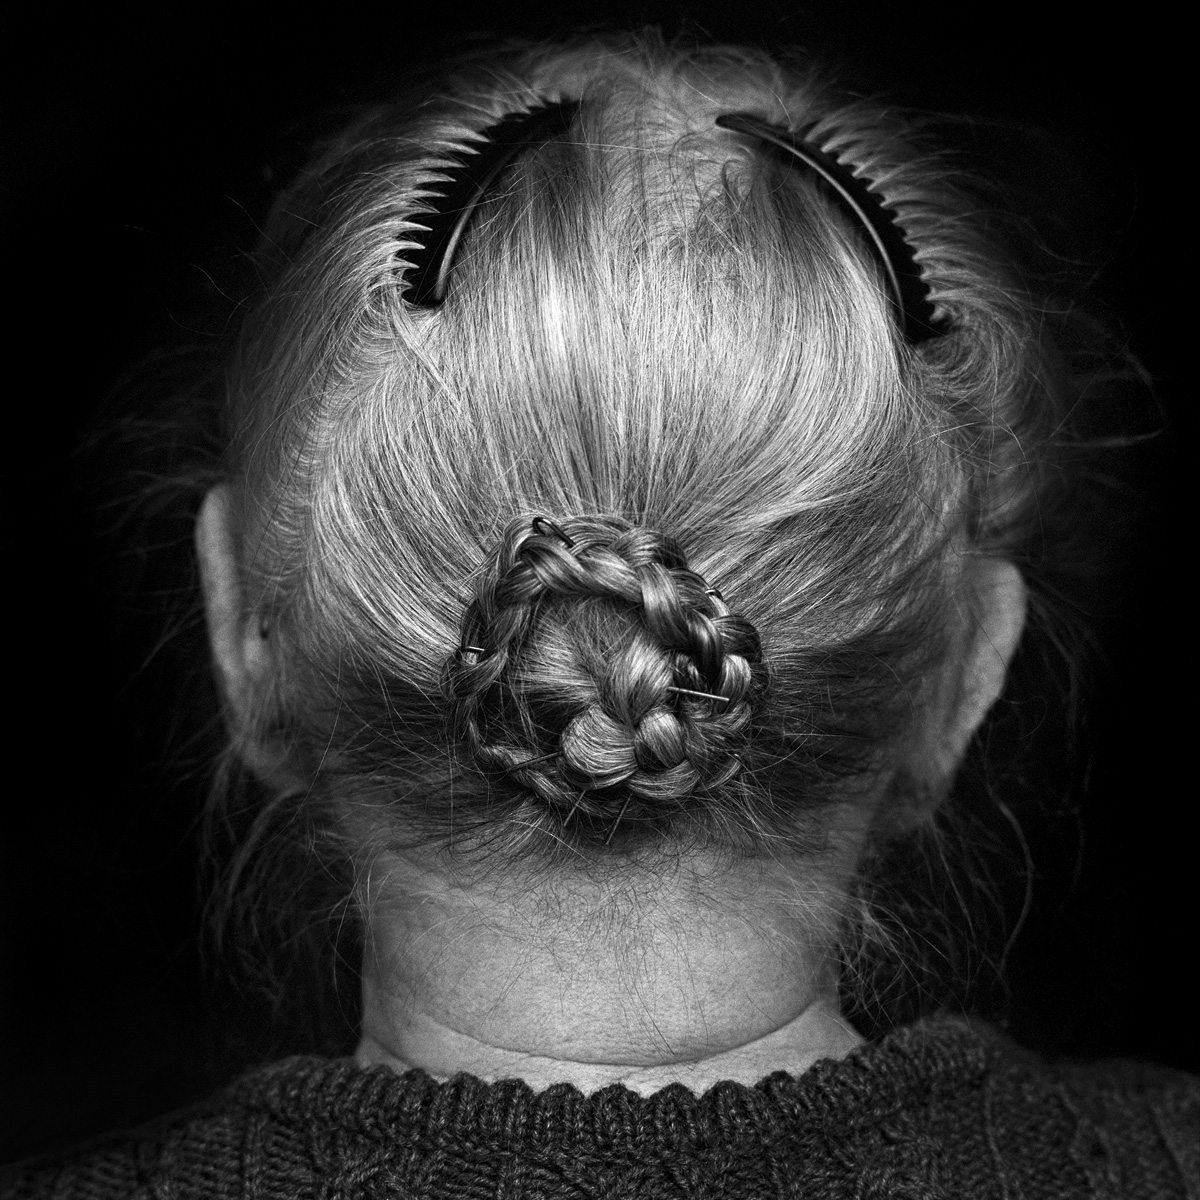 © Christine Turnauer - Maria (Neck), Farmer, Austria, 1996